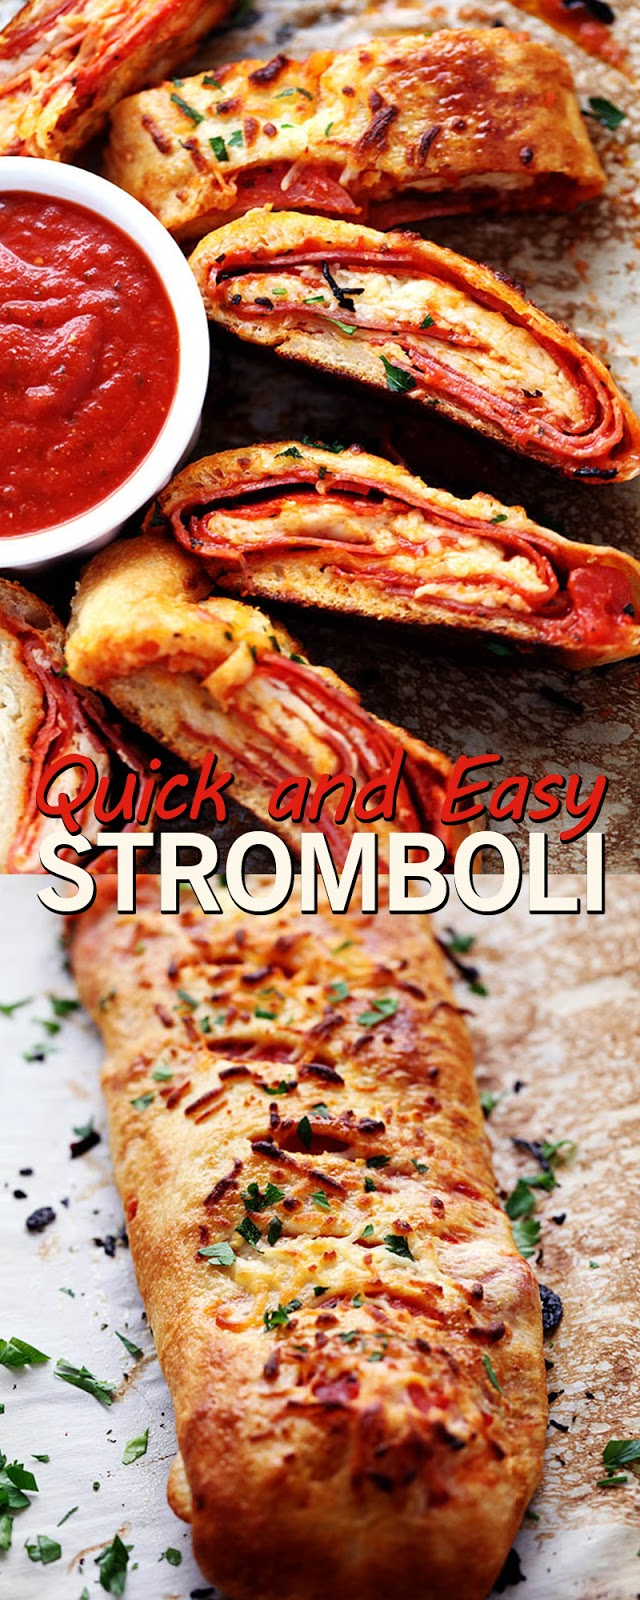 QUICK AND EASY STROMBOLI